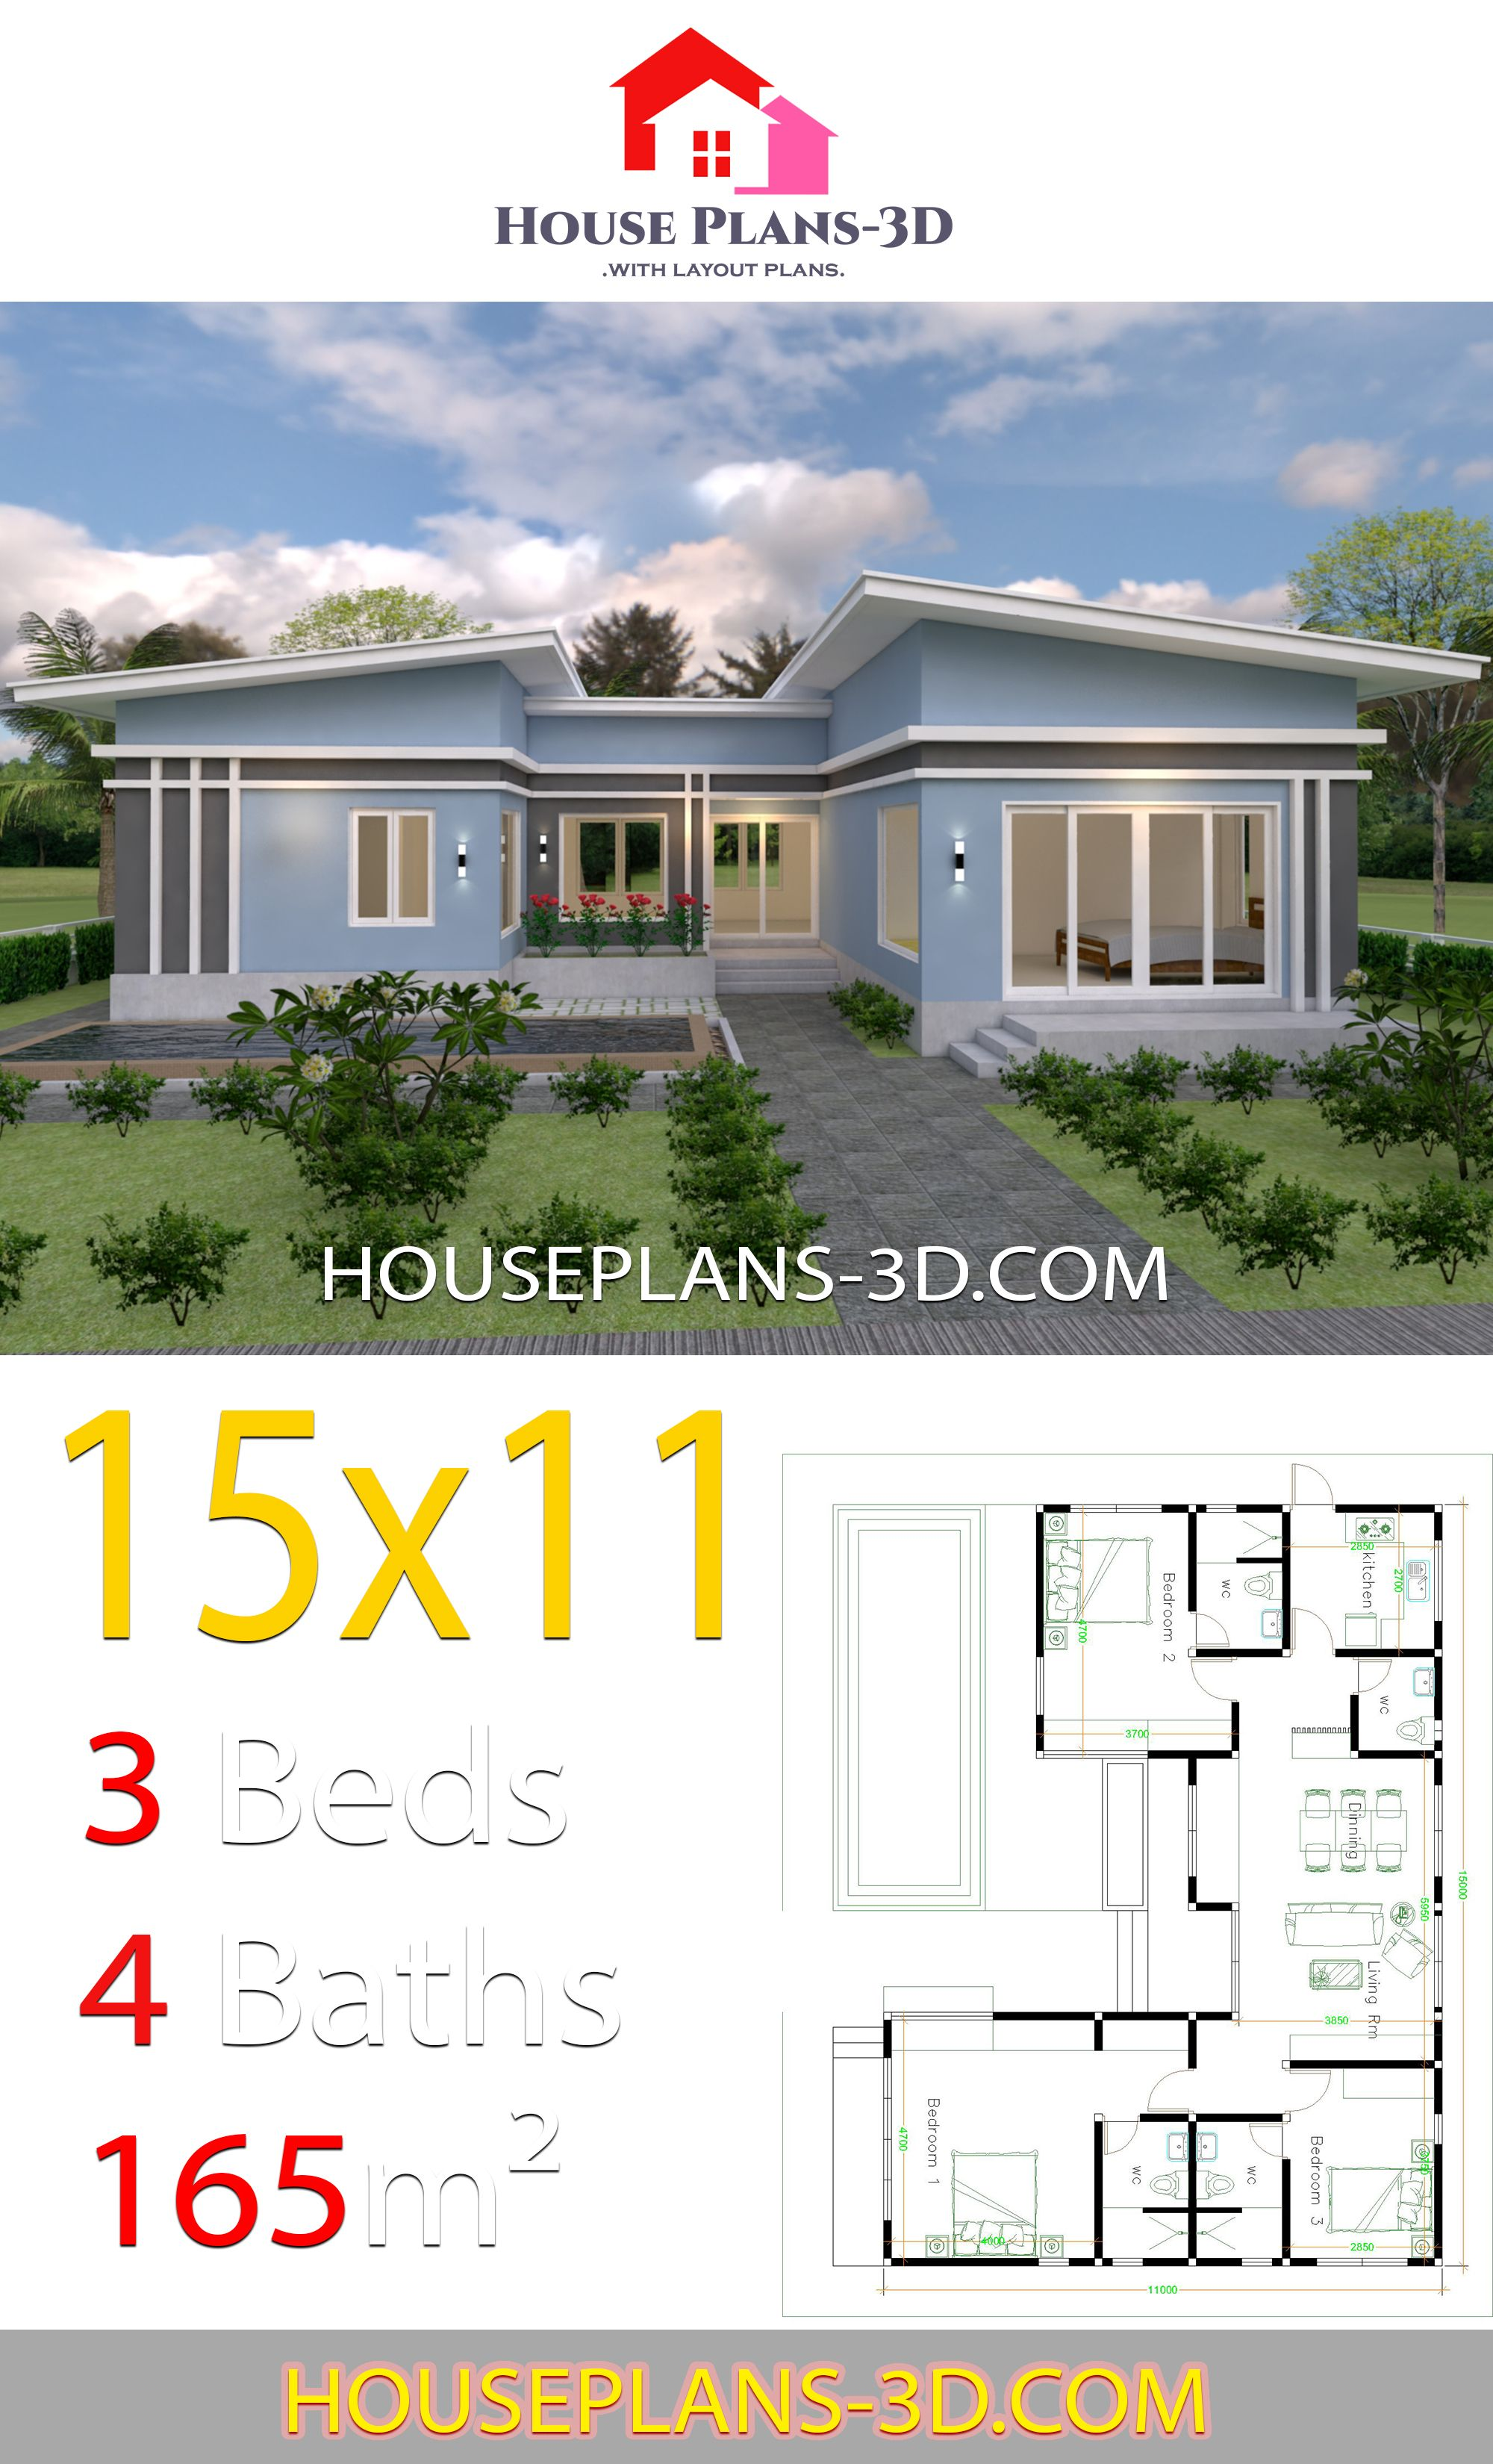 House Plans 15x11 With 3 Bedrooms Slope Roof House Plans 3d House Construction Plan My House Plans House Plan Gallery